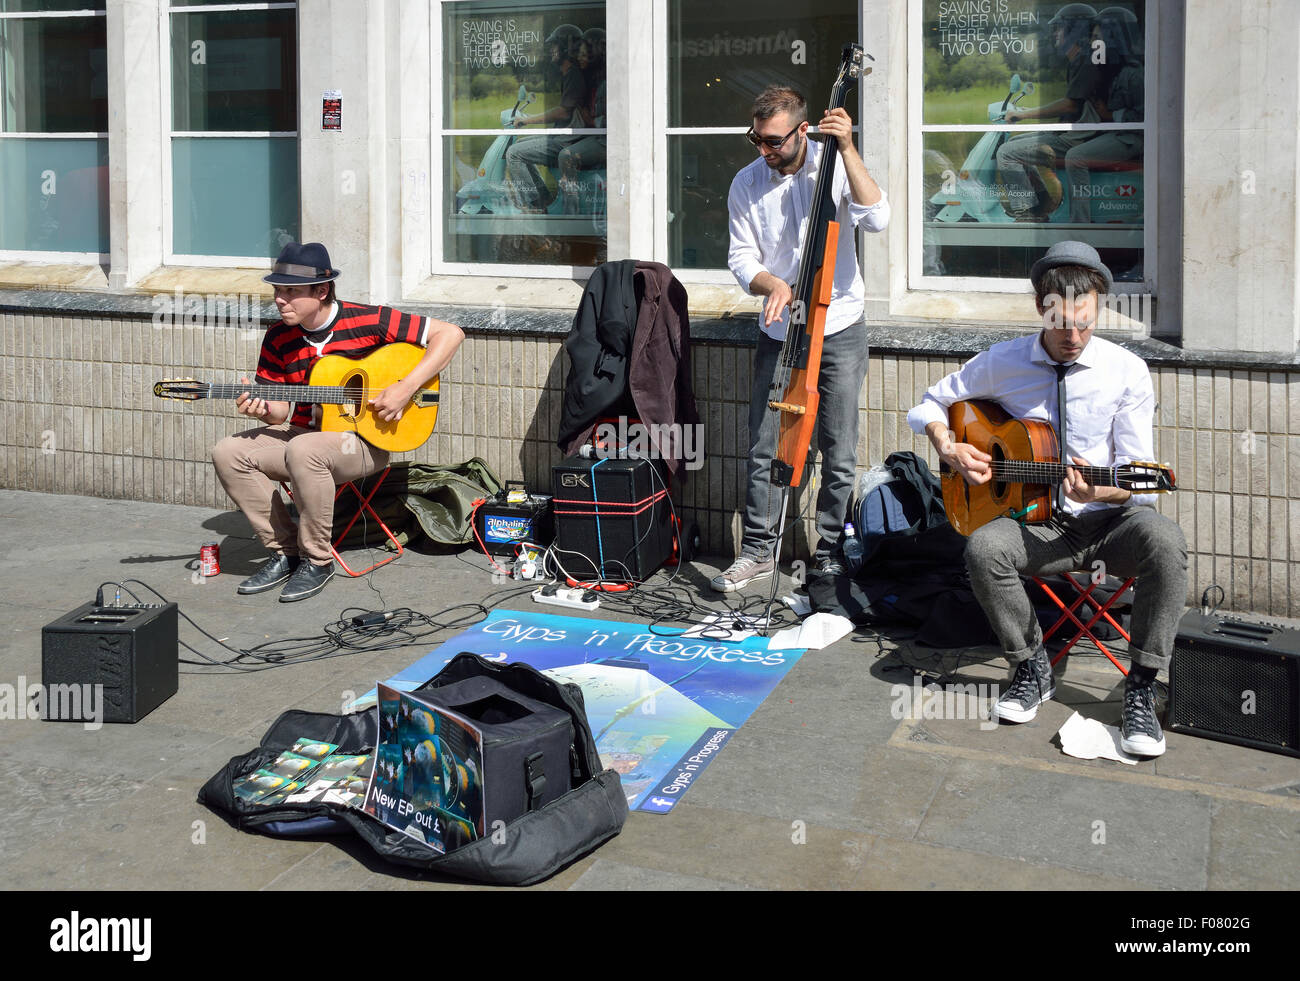 Street buskers performing in James Street, Covent Garden, West End, City of Westminster, London, England, United - Stock Image